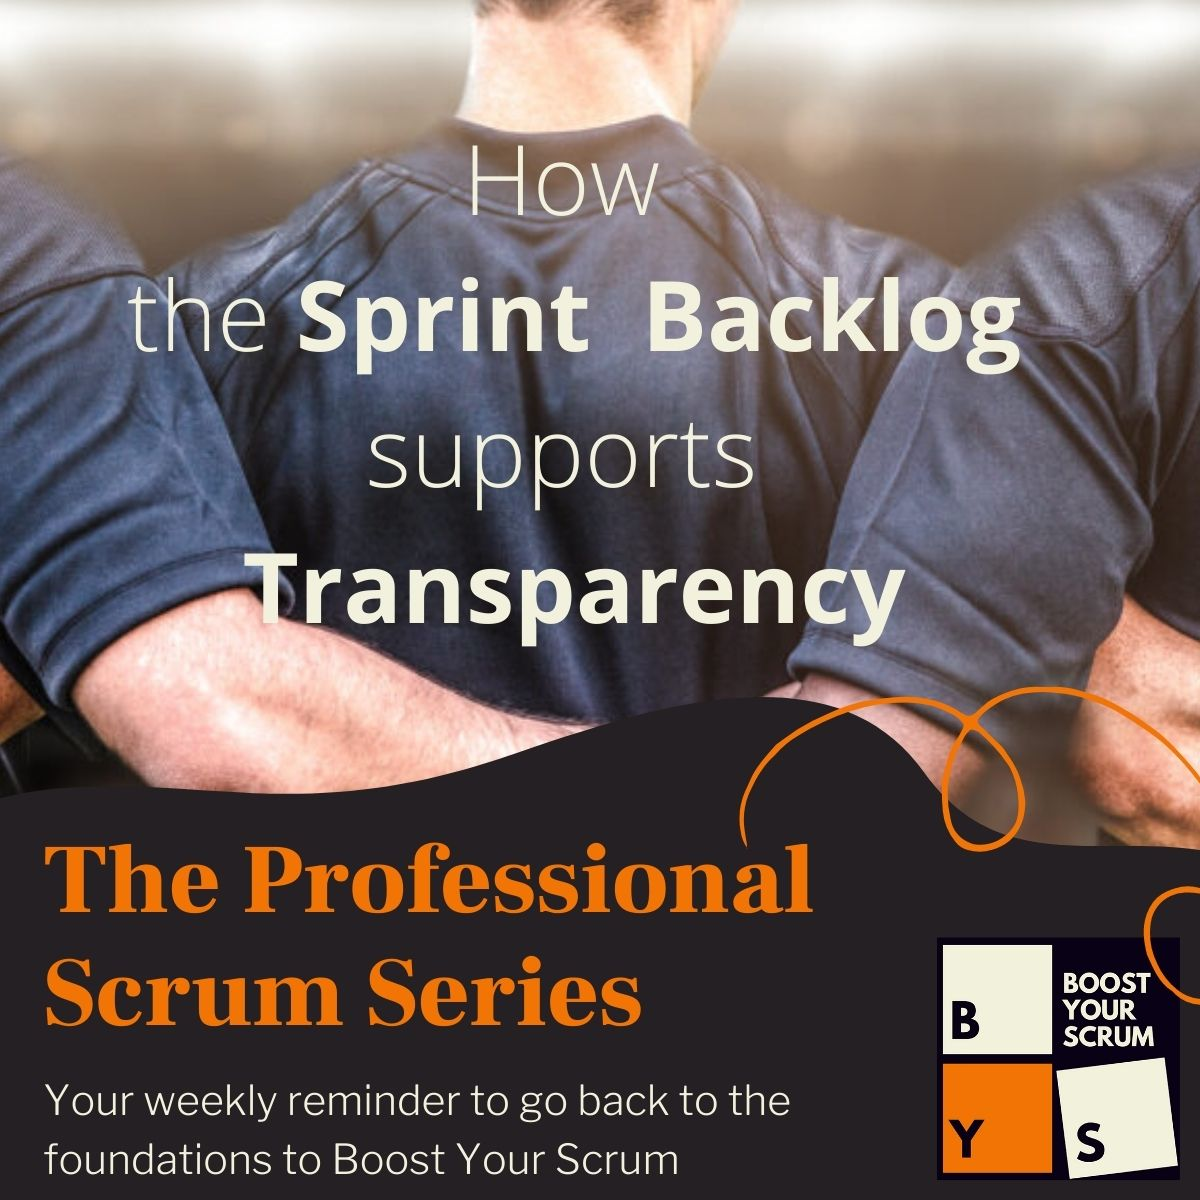 How the Sprint Backlog supports Transparency